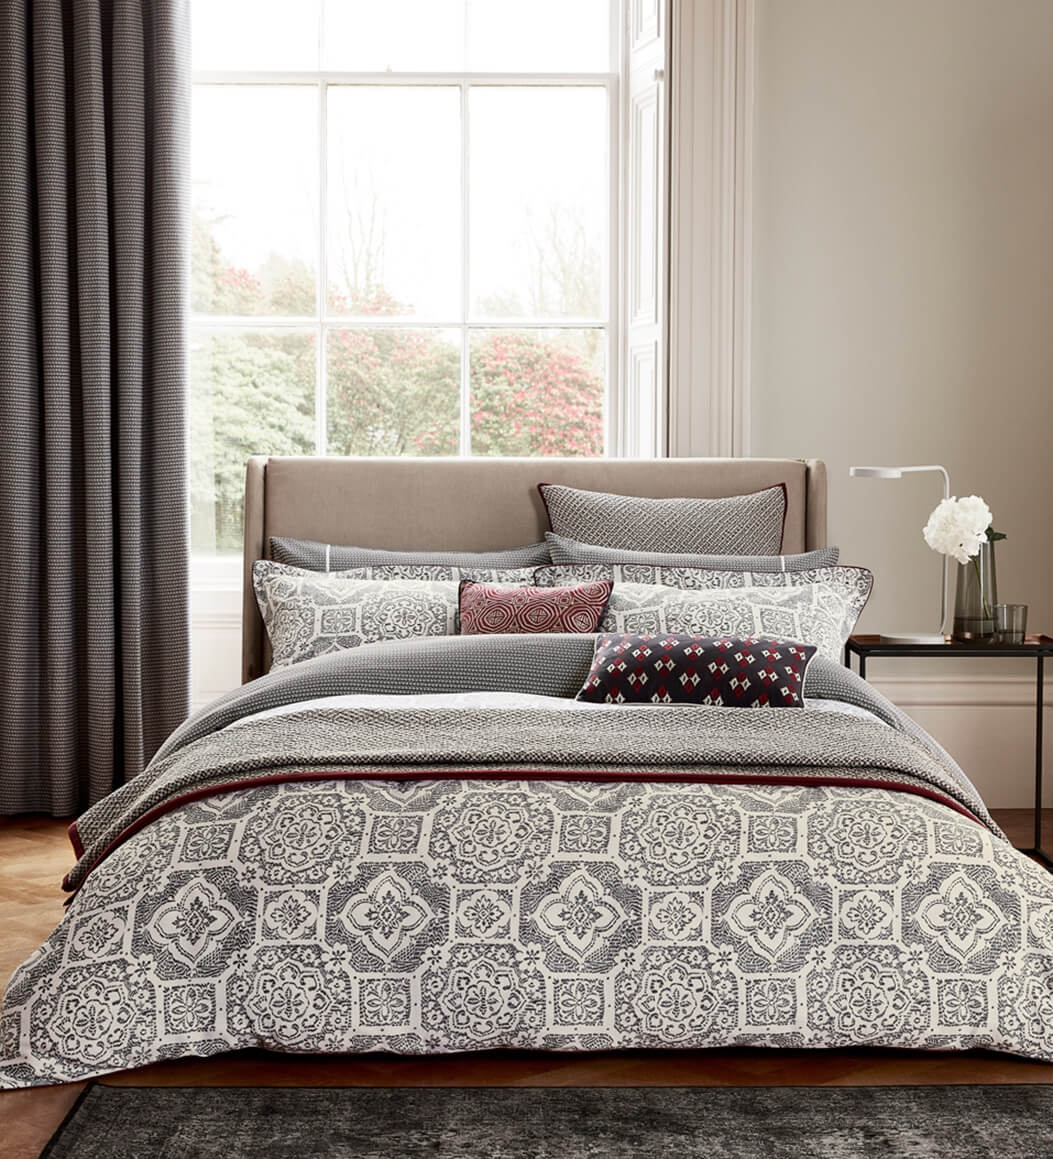 Image of Bedeck Amaya Duvet Cover, King, Charcoal